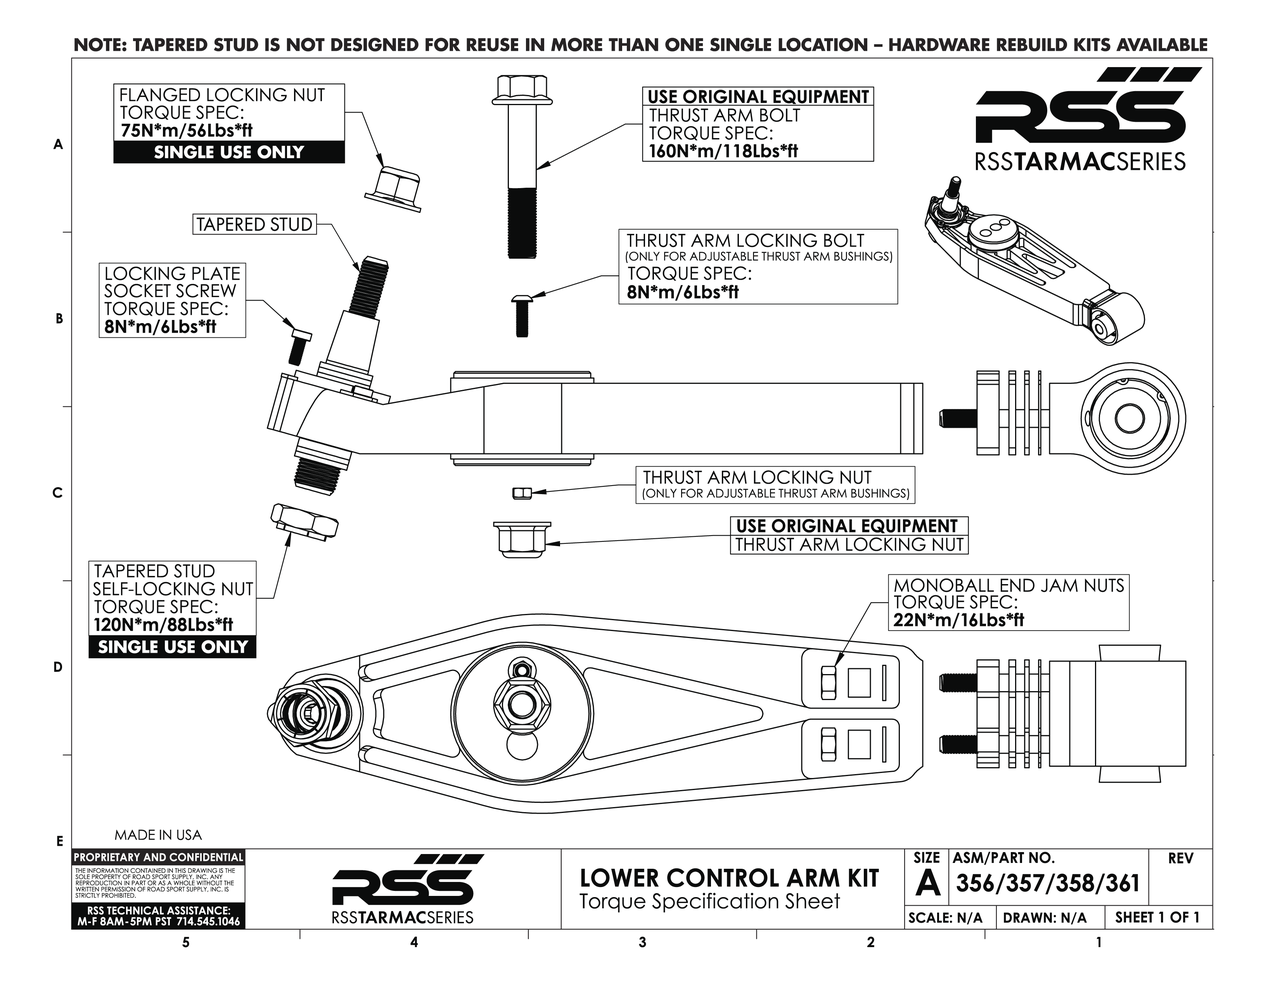 """#361 RSS TARMAC SERIES 2-PIECE COMPLETE LOWER CONTROL ARM KIT - Front Axle (Pair of 2). Fits front axle (987, 997/991 C2, C4, Turbo, 981/982/718). Includes: Adjustable/Non-Hydraulic Replacement Thrust Arm Bushings, 1mm/2mm/3mm/7mm Shims, Spherical Monoball Ends.** Note: 981 and 991 Models may require additional Front Litronic or Torque Vector Sensor Brackets.   RSS Tarmac Series Motorsport Lower Control Arms are specifically engineered for use on lowered vehicles that have reduced travel struts/dampers If you need assistance in identifying your suspension type please contact us. For specific fitment information refer to the """"Chassis Fitment Guide and Lower Control Arm Fitment Notes"""" (See Images Below).  The RSS Tarmac Series – Motorsports Control Arms are designed for the Porsche driver who demands the absolute maximum in precision handling, feedback and control from their chassis. This system has been specially engineered to provide unmatched performance, quality, strength and serviceability. RSS Tarmac Series Control Arms address the performance related shortcomings of the OEM rubber mounted suspension components which were designed to reduce road noise and vibration for everyday street use. The use of rubber injected moldings in mounting components such as the control arms, thrust arms, upper links and toe arms is a compromise in regards to maximum suspension performance. The soft rubber deflects under suspension load which in turn causes unwanted movement (deflection) between the suspension and chassis. Data also shows that temporary changes in spring rates can occur as well. These movements and changes result in unnecessary corrections and inputs from the driver.  FEATURES & BENEFITS • Completely Serviceable: For the extreme, repetitive track day enthusiast or racer, our high strength steel alloy spherical bearings (with a friction reducing, longevity increasing Teflon liner) can be replaced unlike the motorsports arms, in which case a new set of arms will need"""